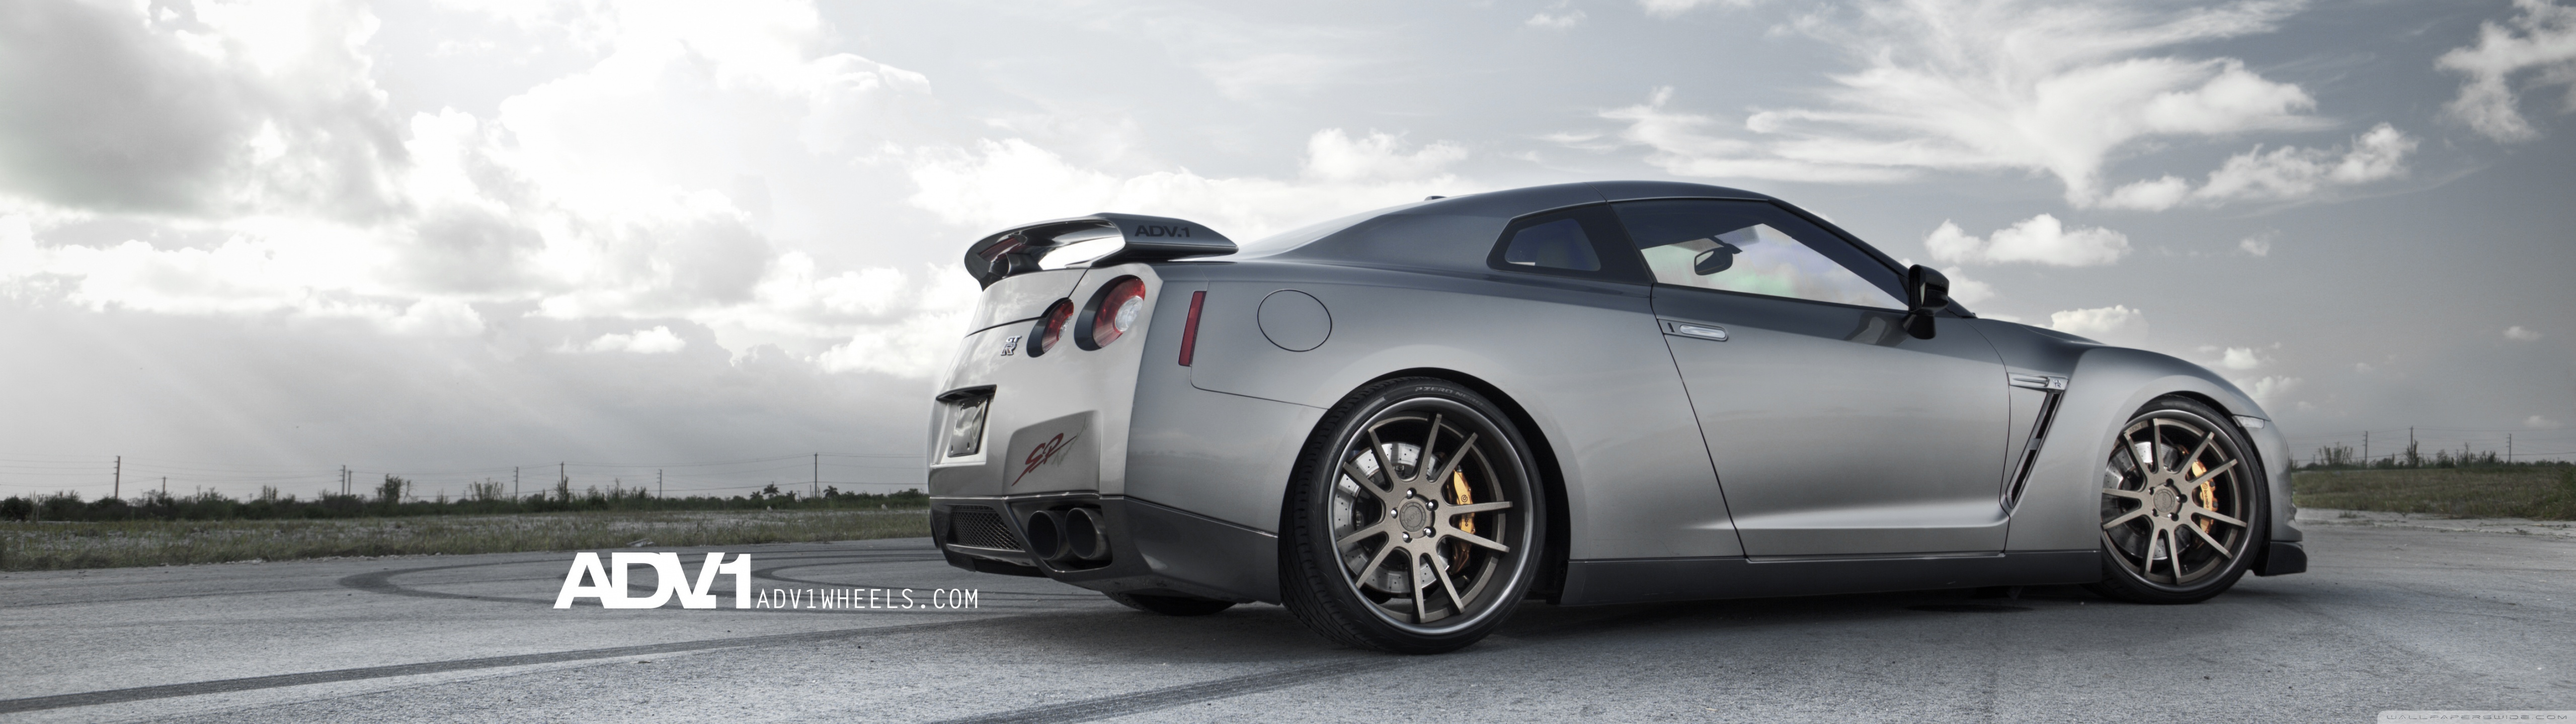 They don't require the use of cellular data and you don't have to worry about losing signal. Adv 1 Nissan Gtr R35 2 Ultra Hd Desktop Background Wallpaper For Multi Display Dual Monitor Tablet Smartphone